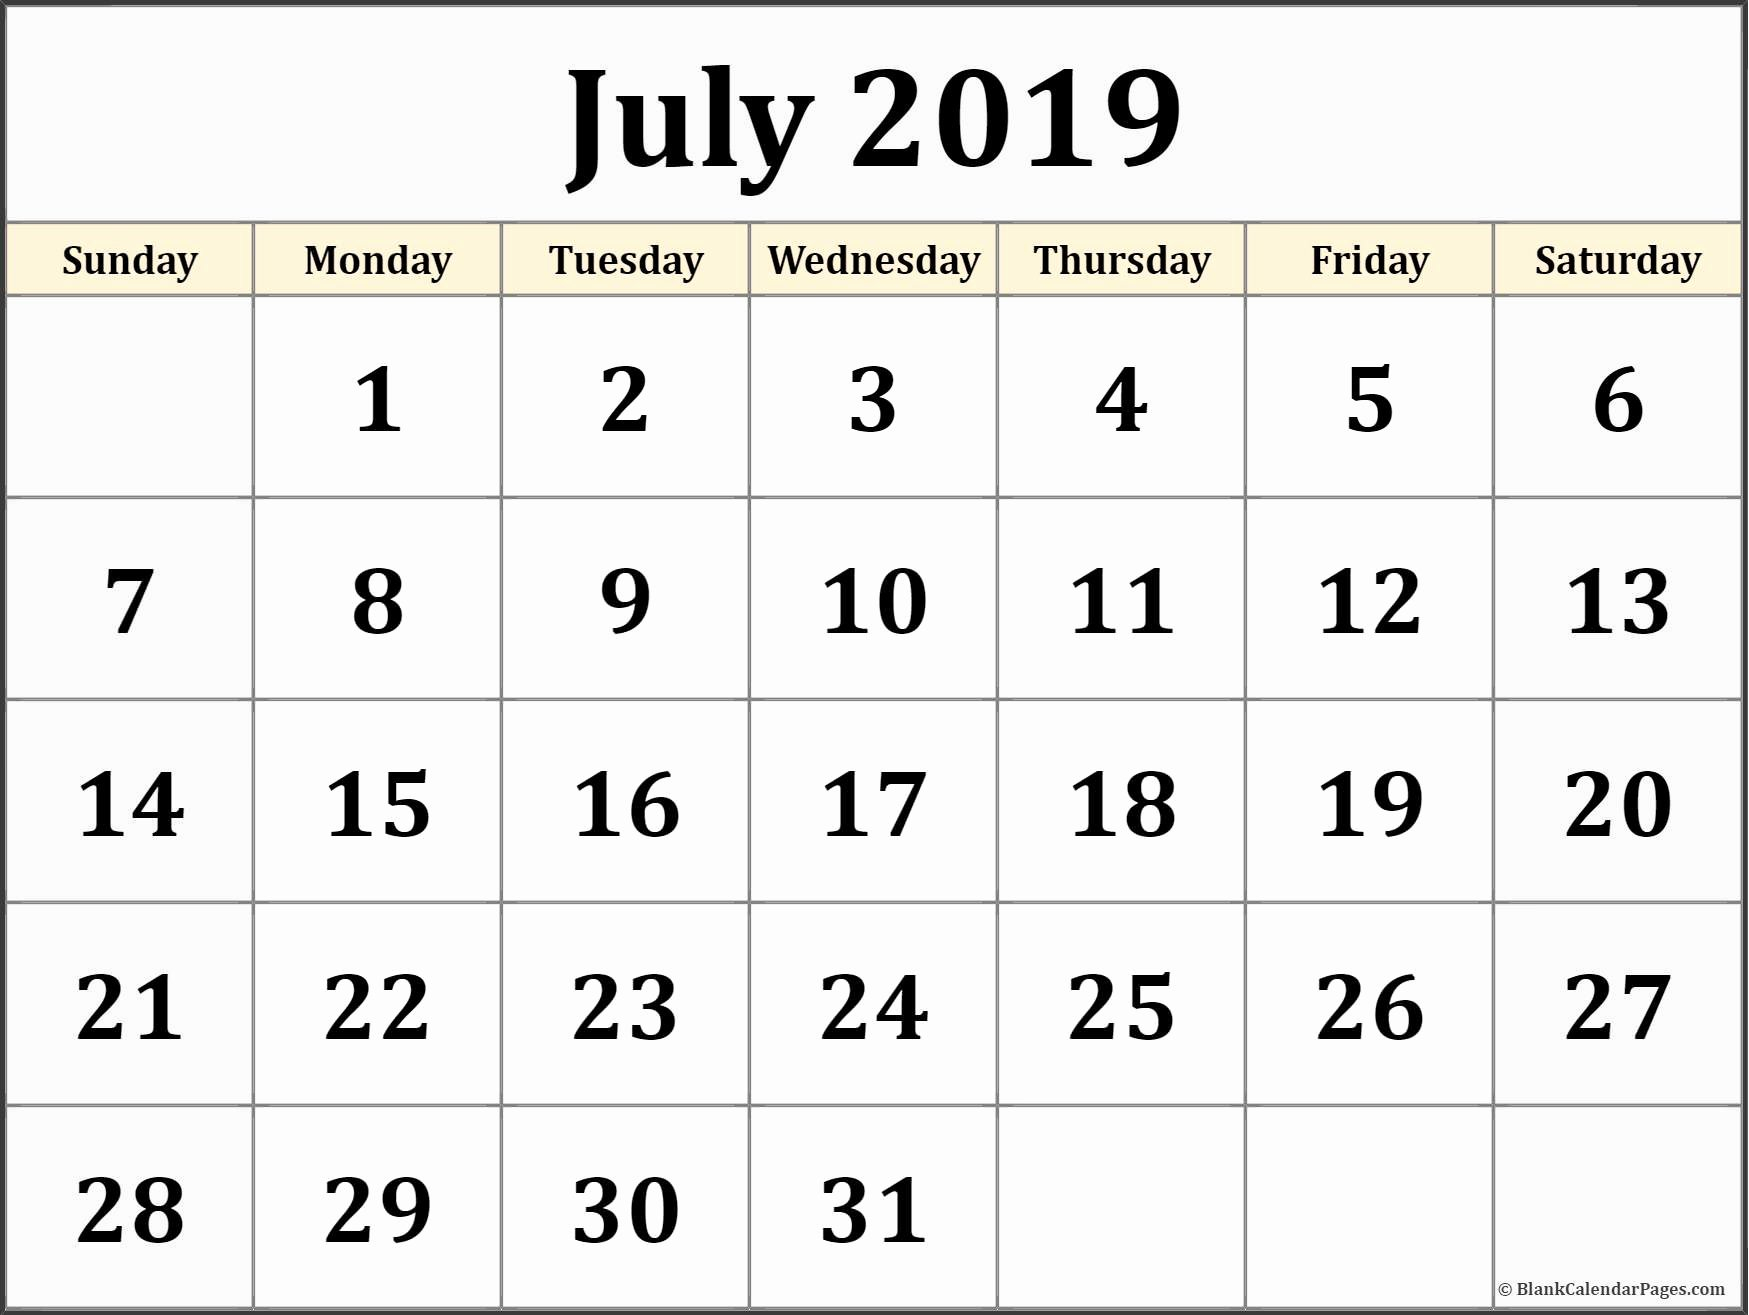 July 2019 Calendar Pdf - Free Printable Calendar, Templates And Holidays July 1 2019 Calendar